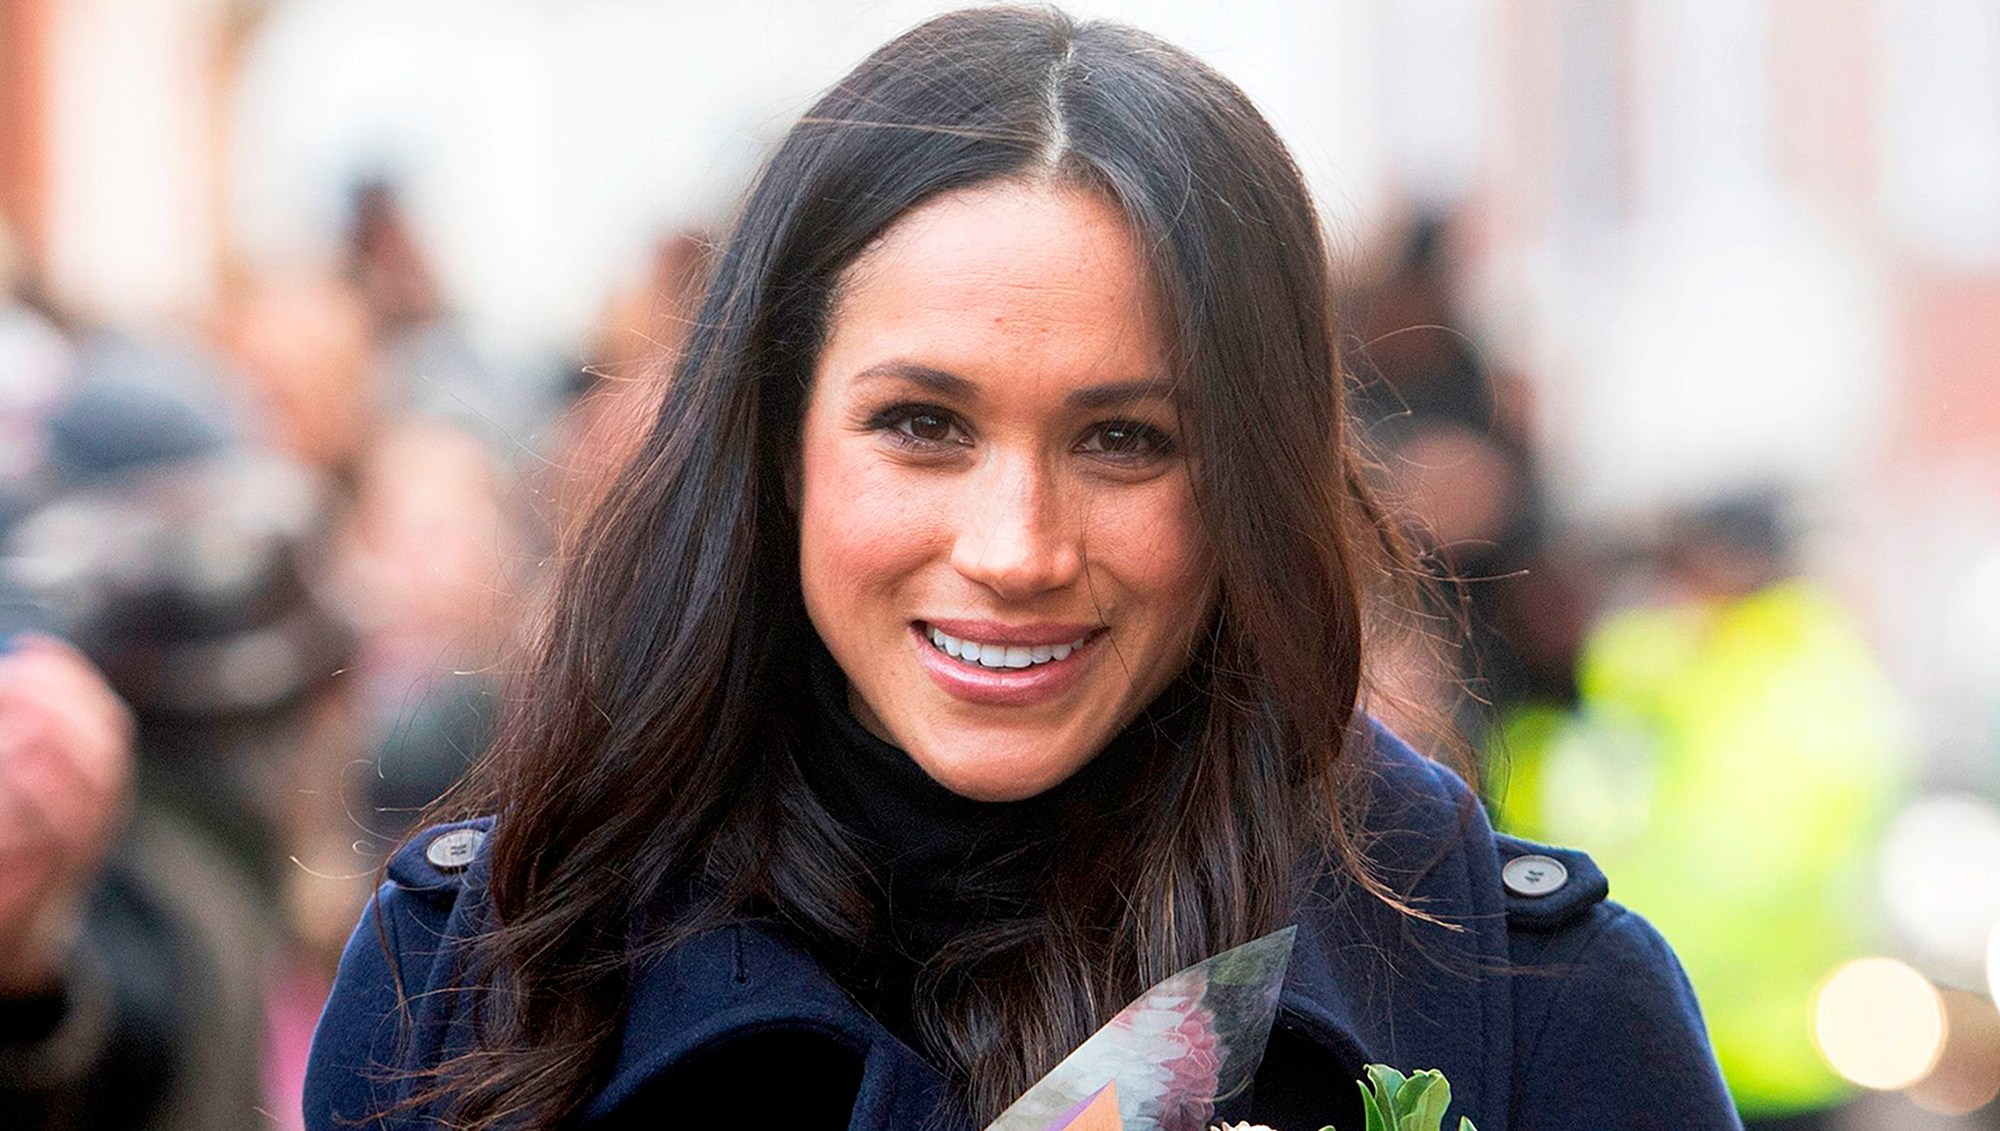 Meghan Markle attend a Terrence Higgins Trust World AIDS Day charity fair at Nottingham Contemporary on December 1, 2017 in Nottingham, England.